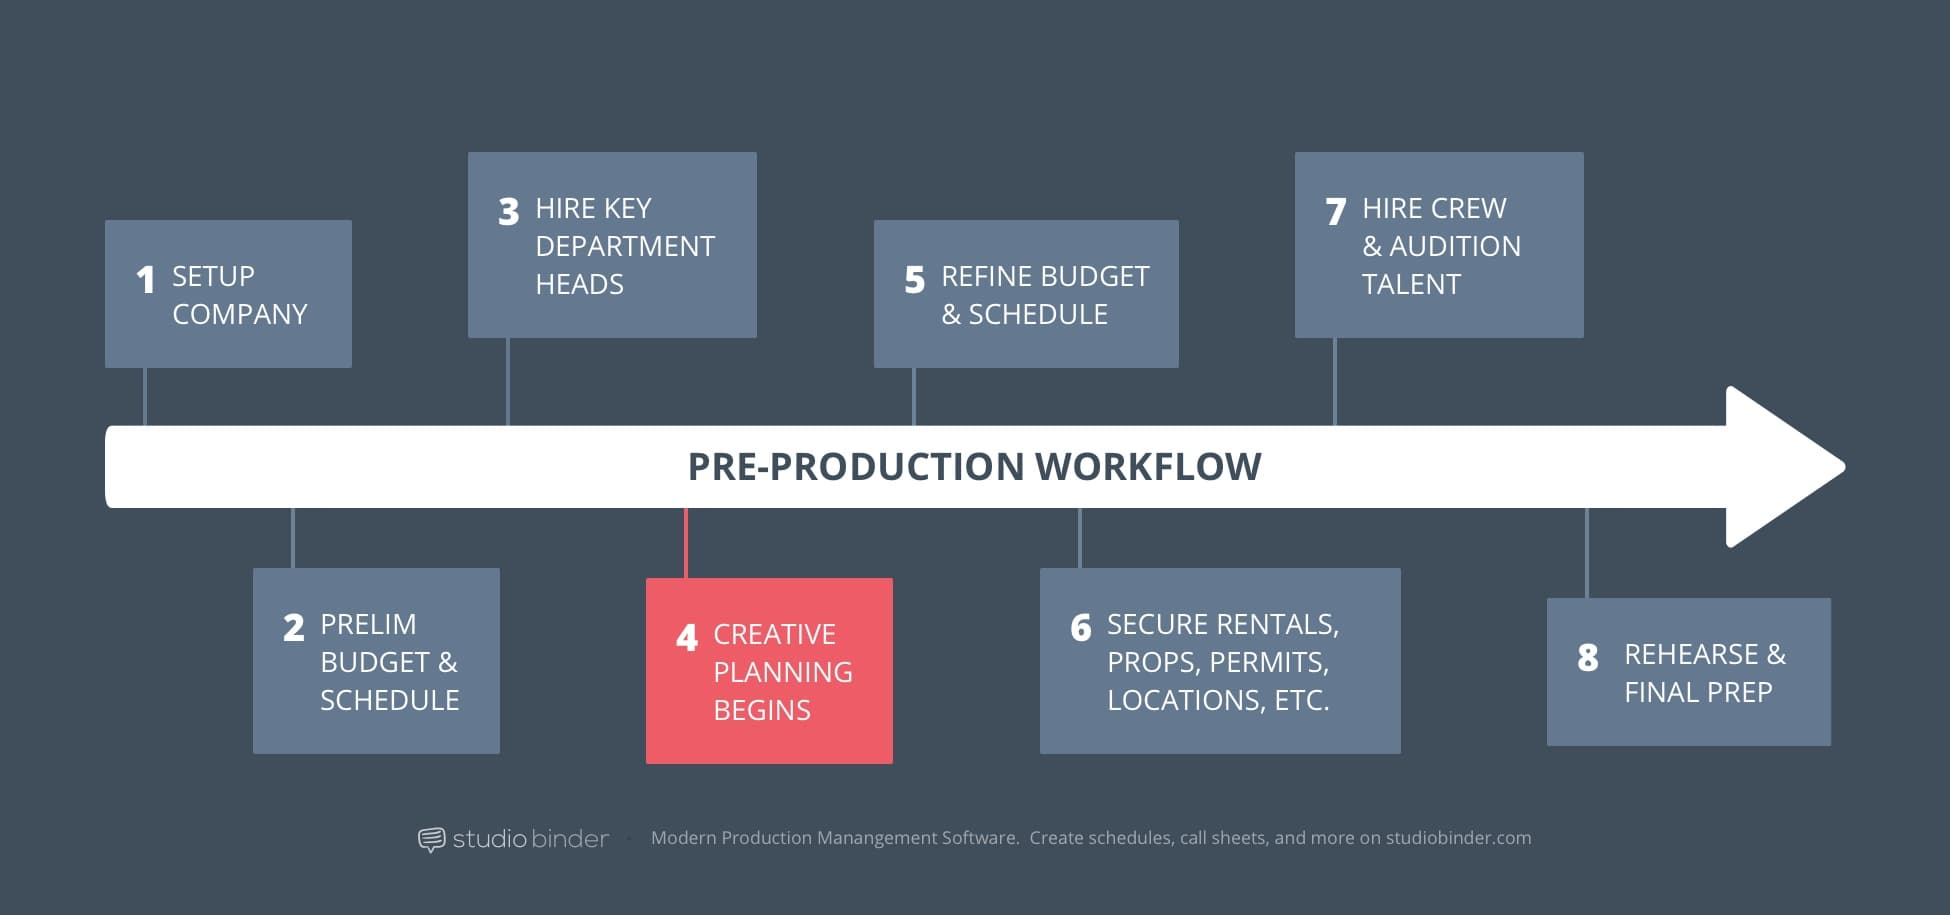 4 – StudioBinder Pre-Production Workflow – Creative Planning